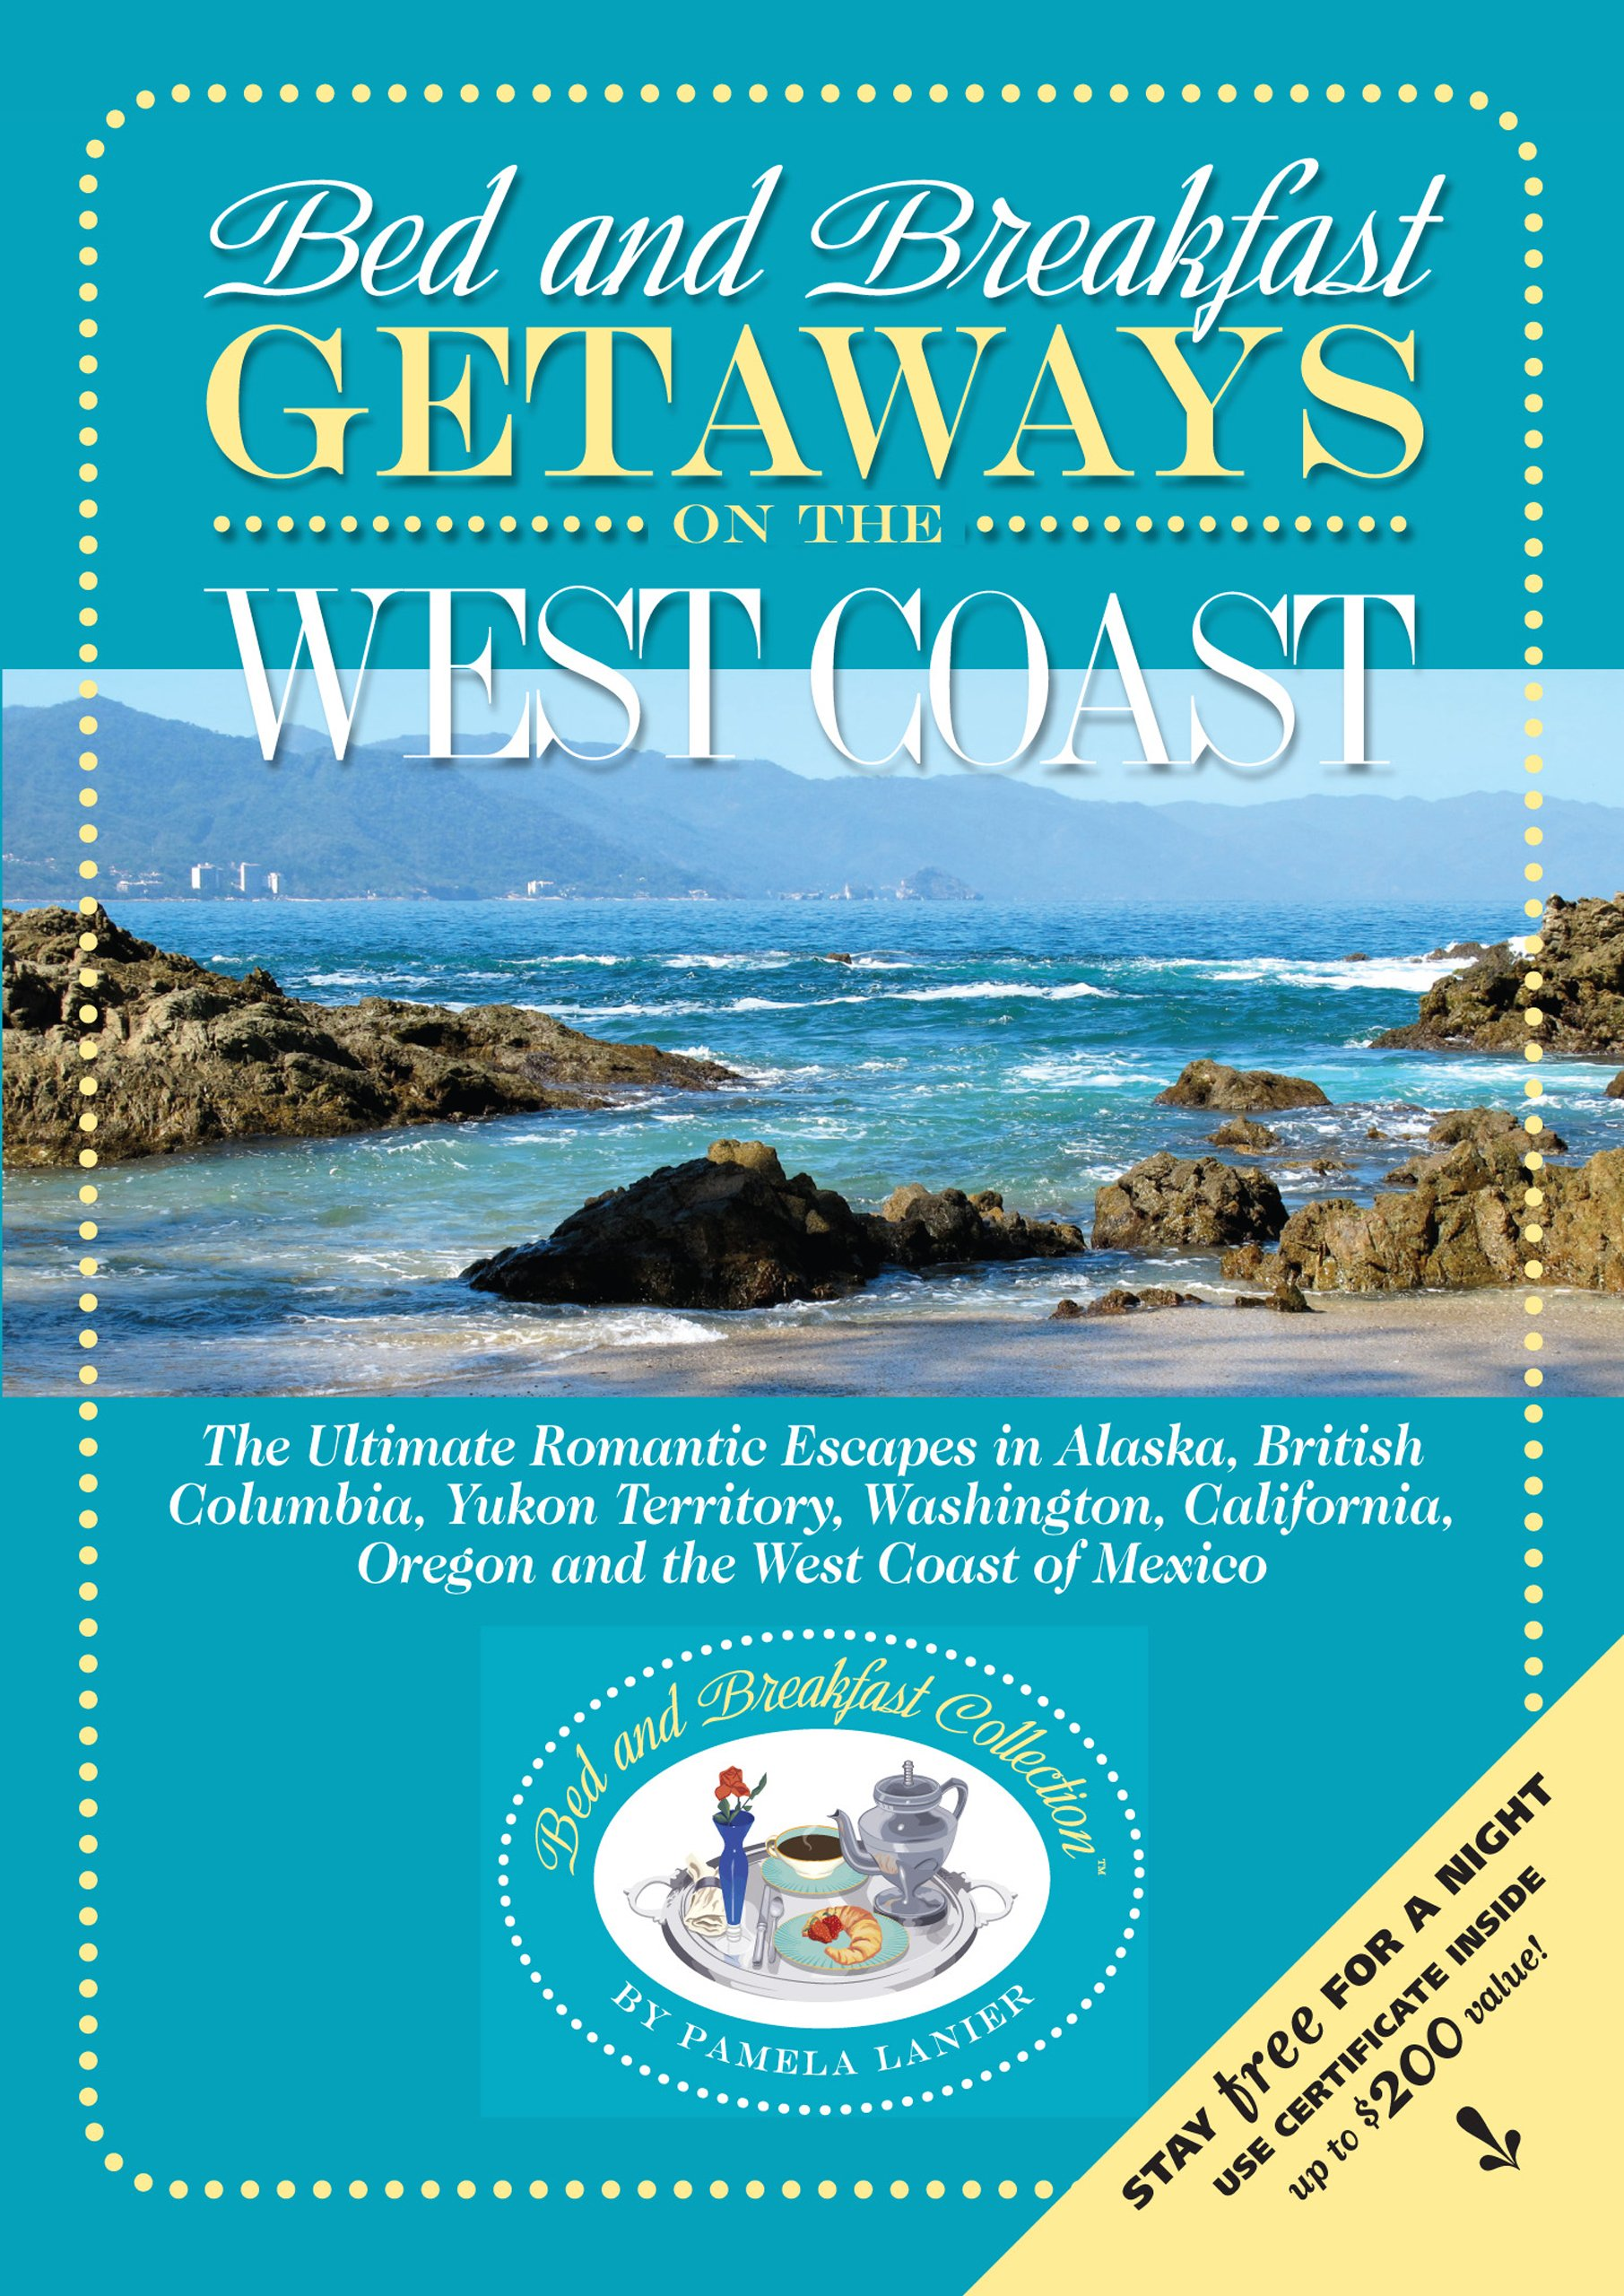 Bed and Breakfast Getaways On the West Coast: Alaska to Mexico (Bed and Breakfast Collection)